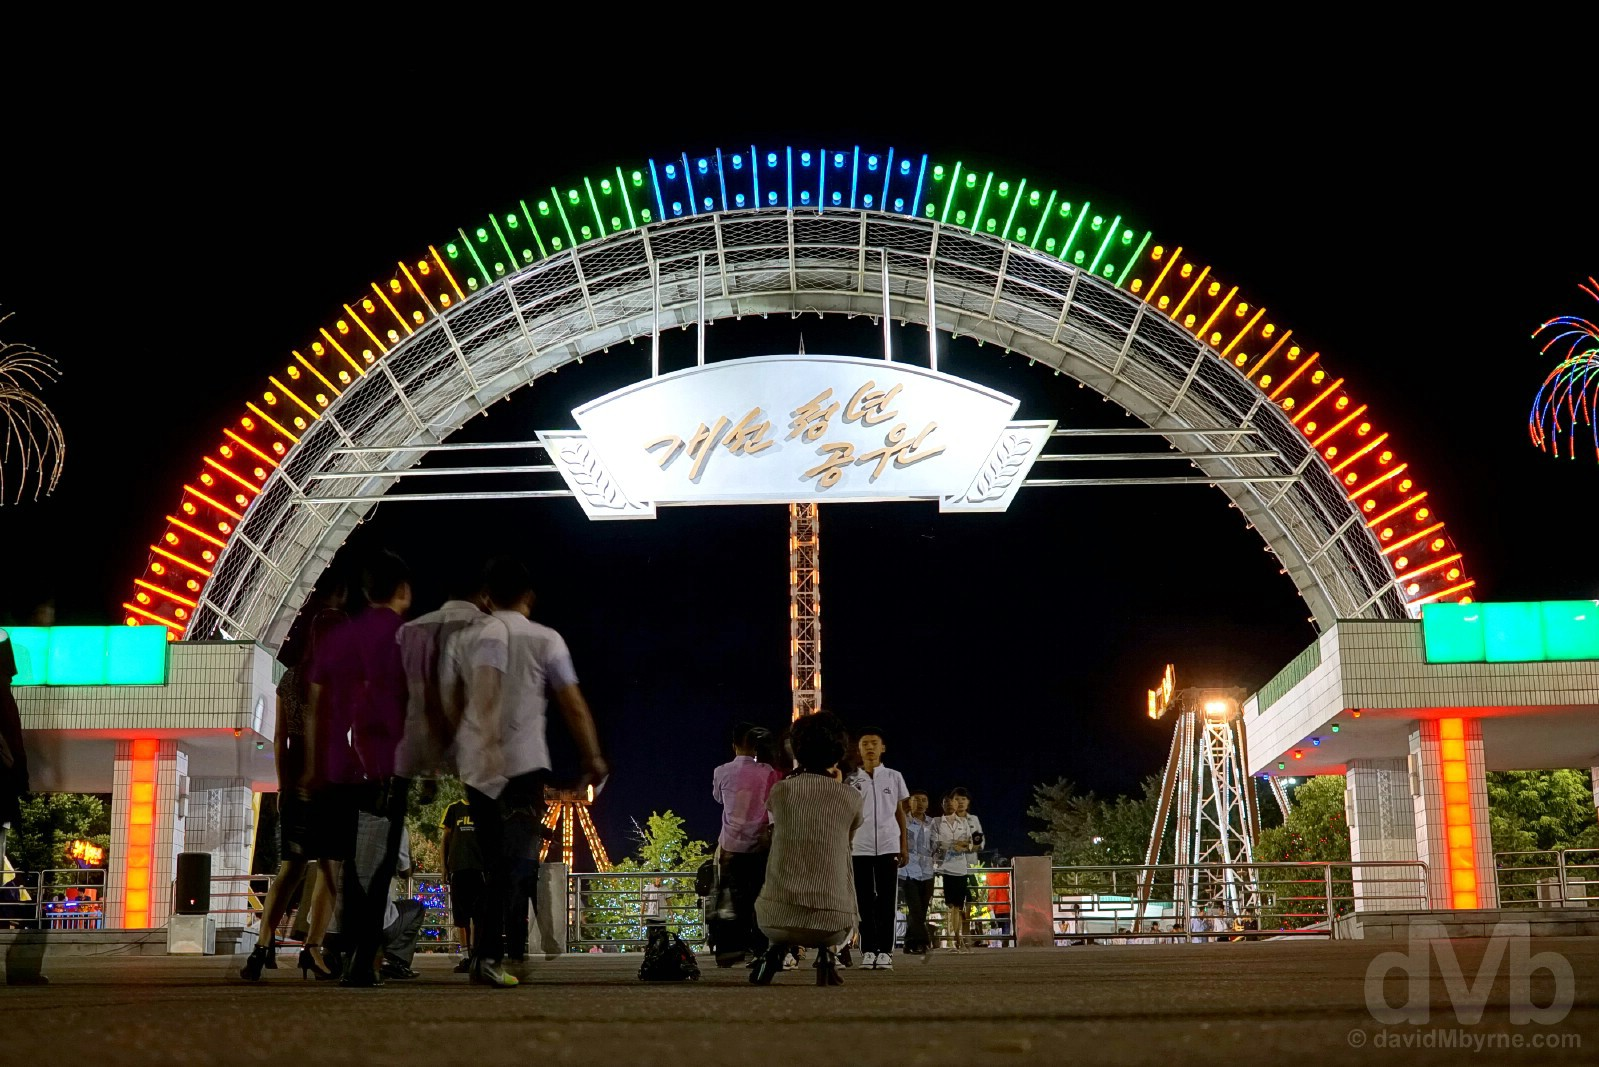 Kaeson Funfair, Pyongyang, North Korea. August 15, 2017.